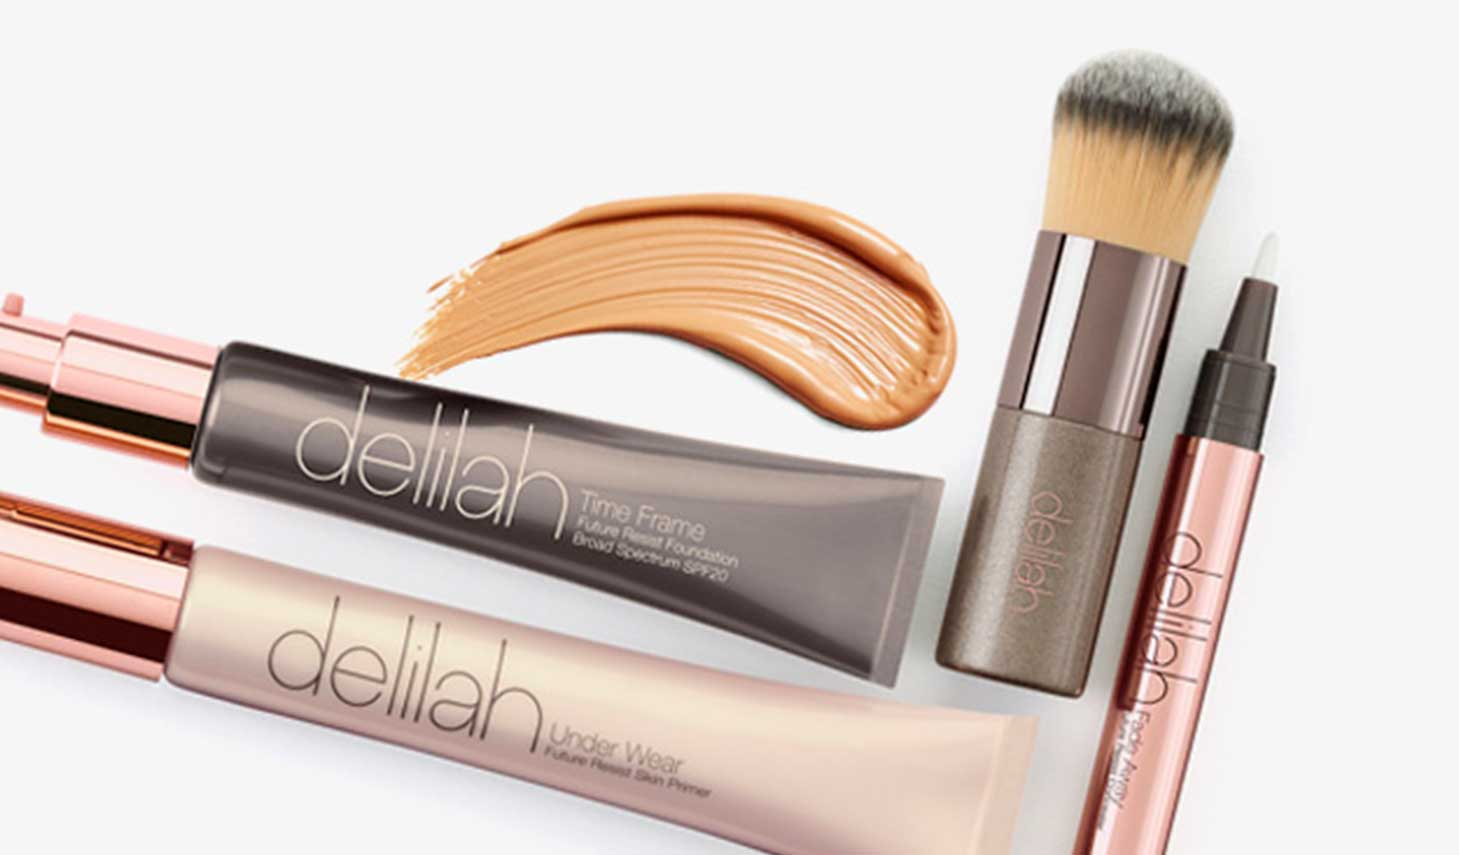 delilah-bethlehem-hair-beauty-section-products-slide3